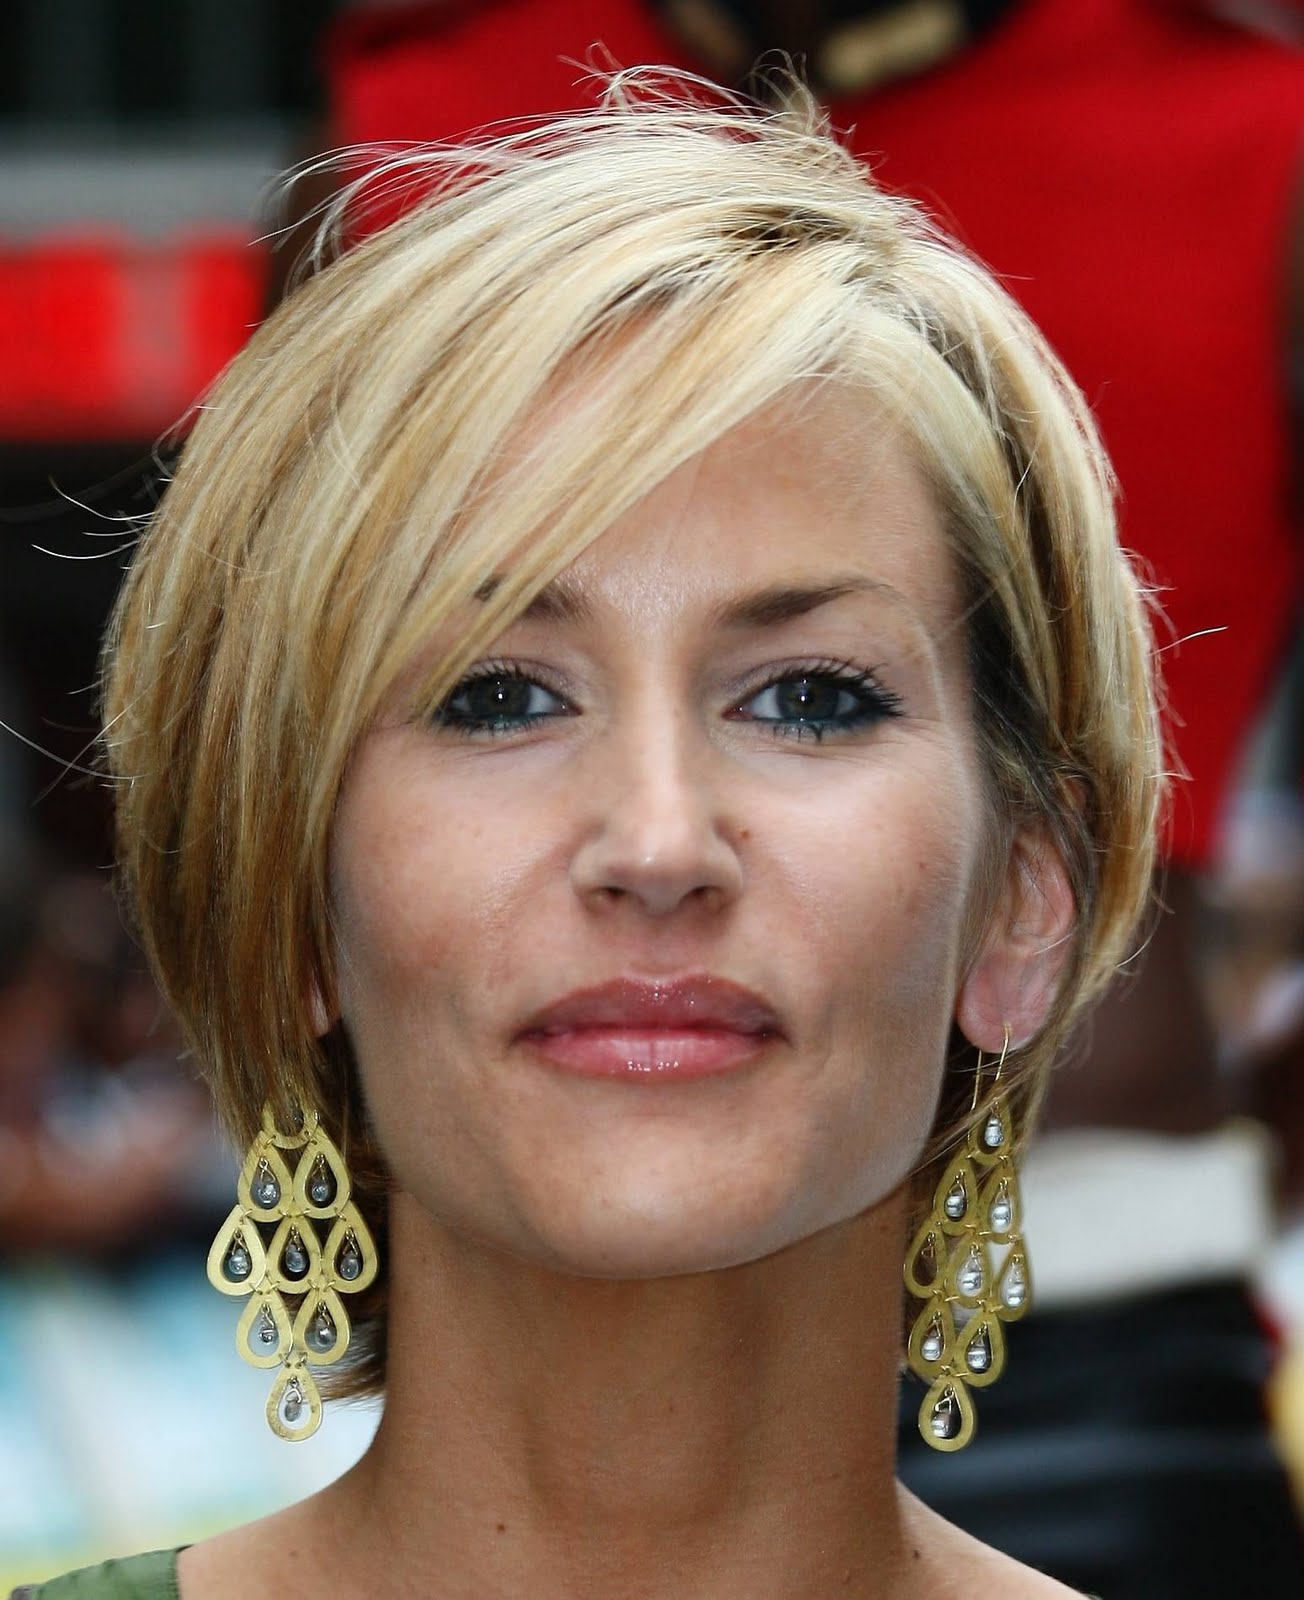 Hairstyles Wallpaper: Cool Short Edgy Hairstyle Wallpaper